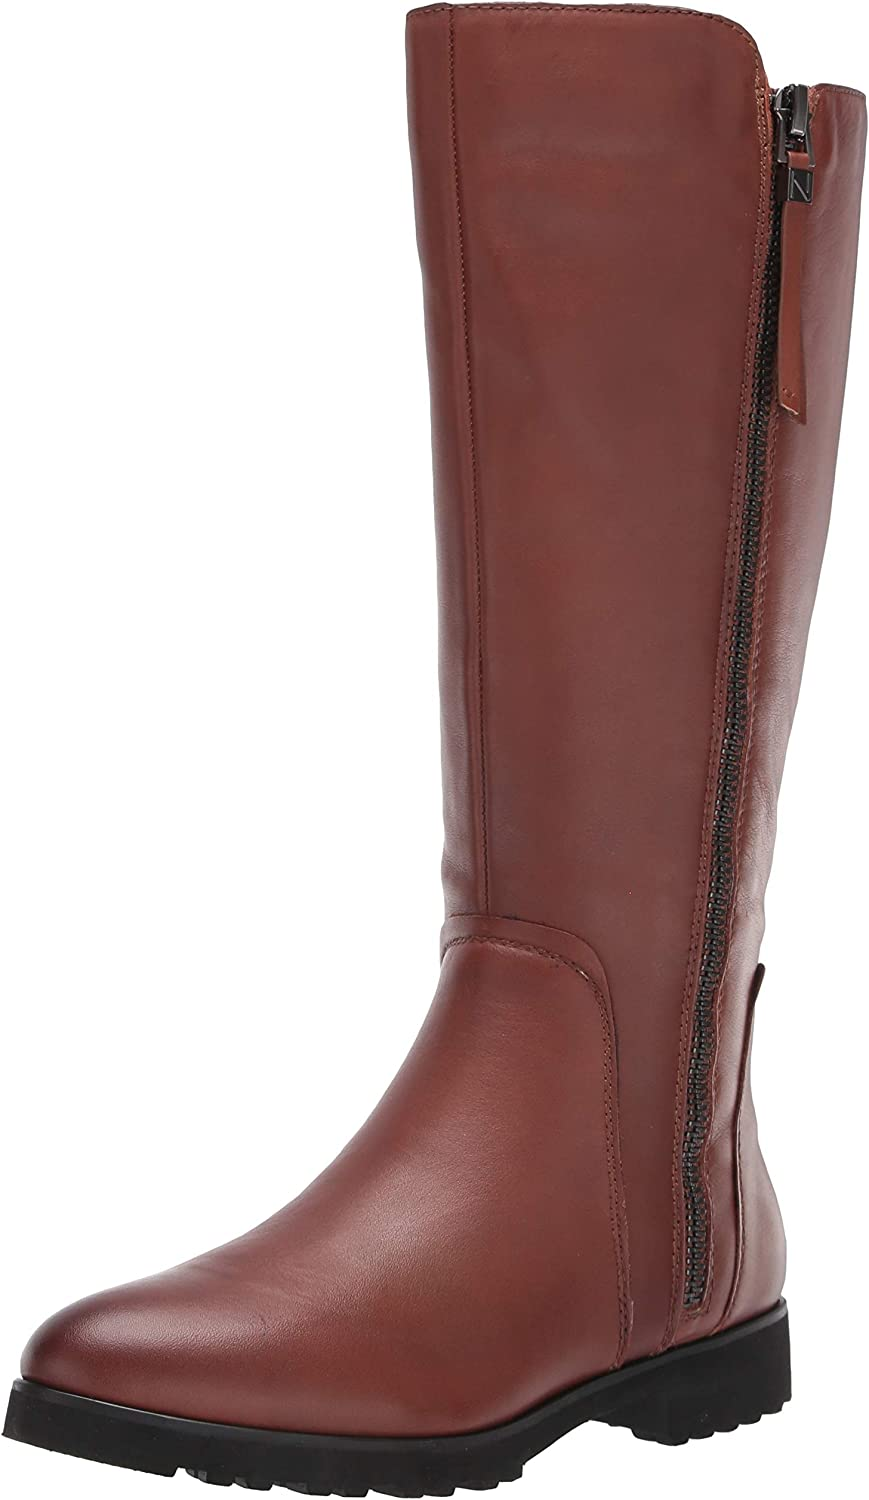 Recommended Naturalizer Women's Gael Mid Knee High Shaft Luxury Boots